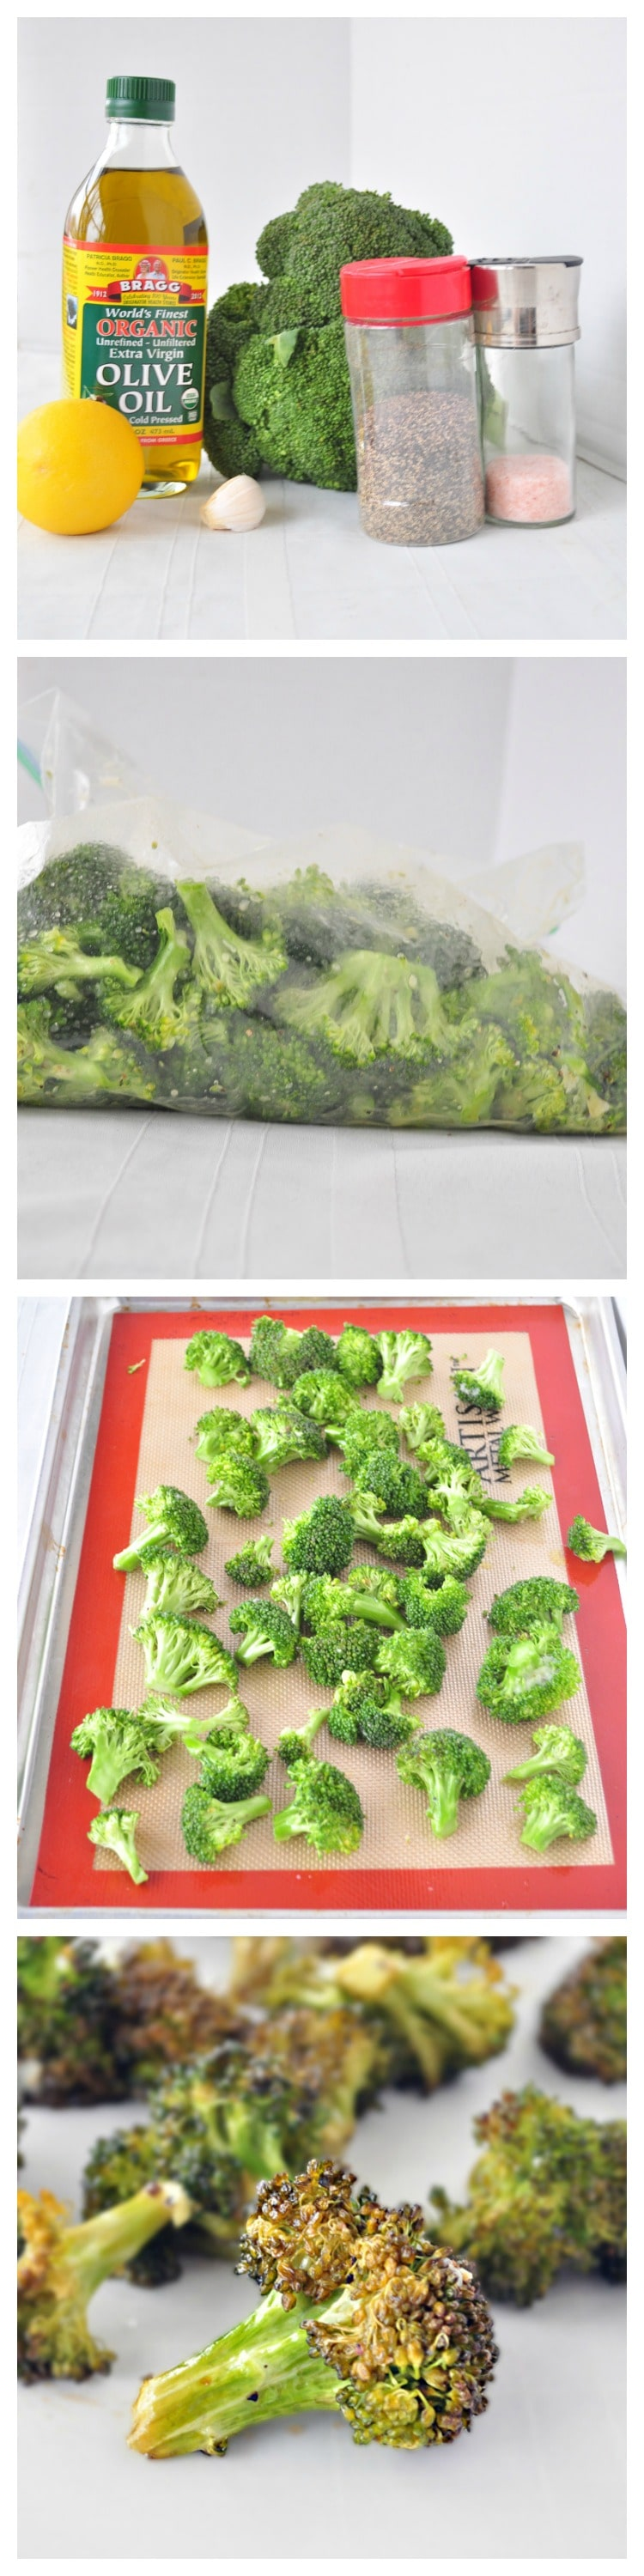 Roasted Broccoli Steps